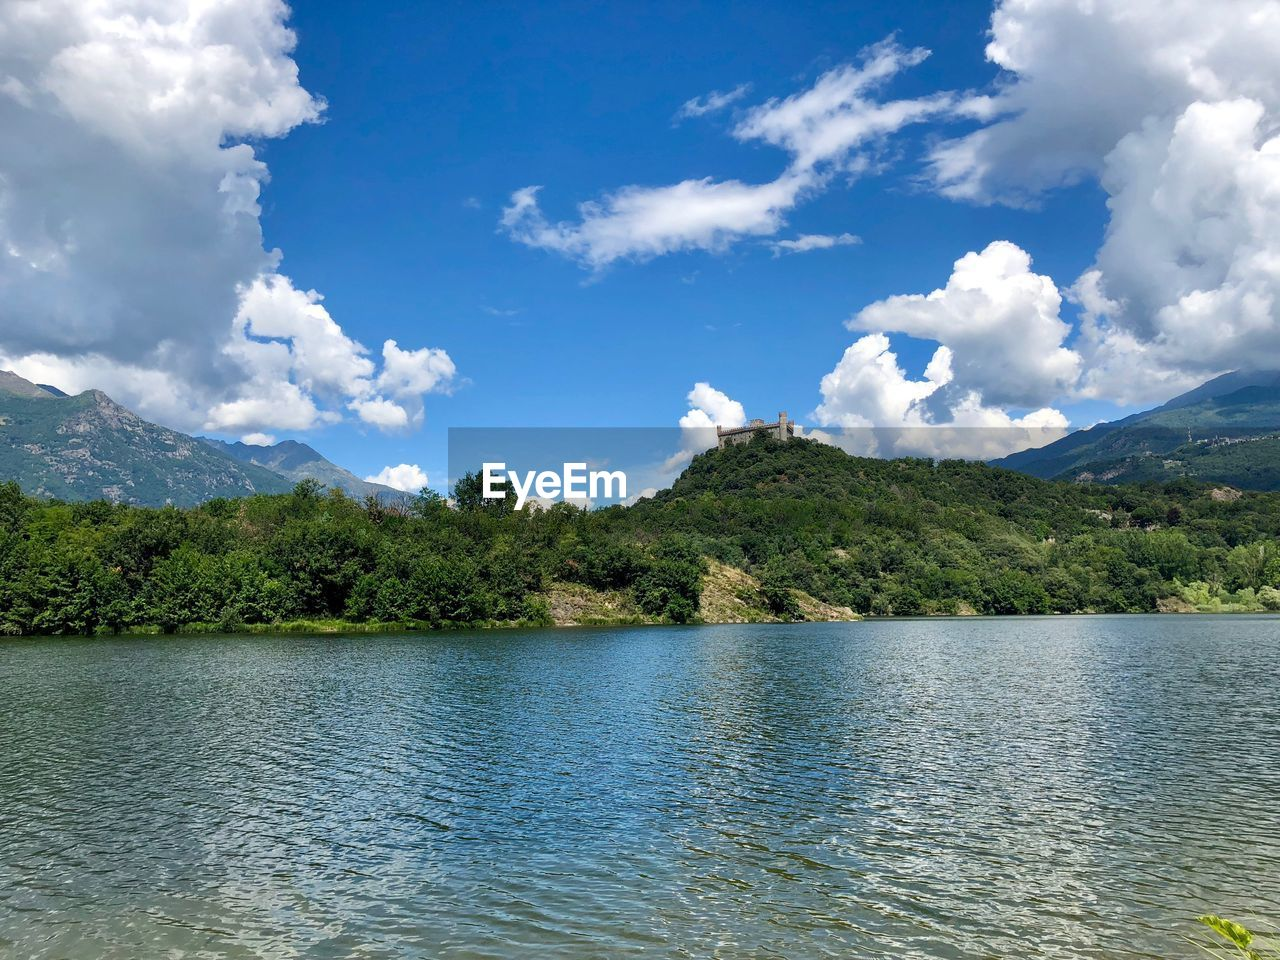 cloud - sky, water, scenics - nature, sky, beauty in nature, mountain, tranquil scene, tranquility, lake, tree, waterfront, non-urban scene, day, no people, plant, nature, idyllic, remote, mountain range, outdoors, range